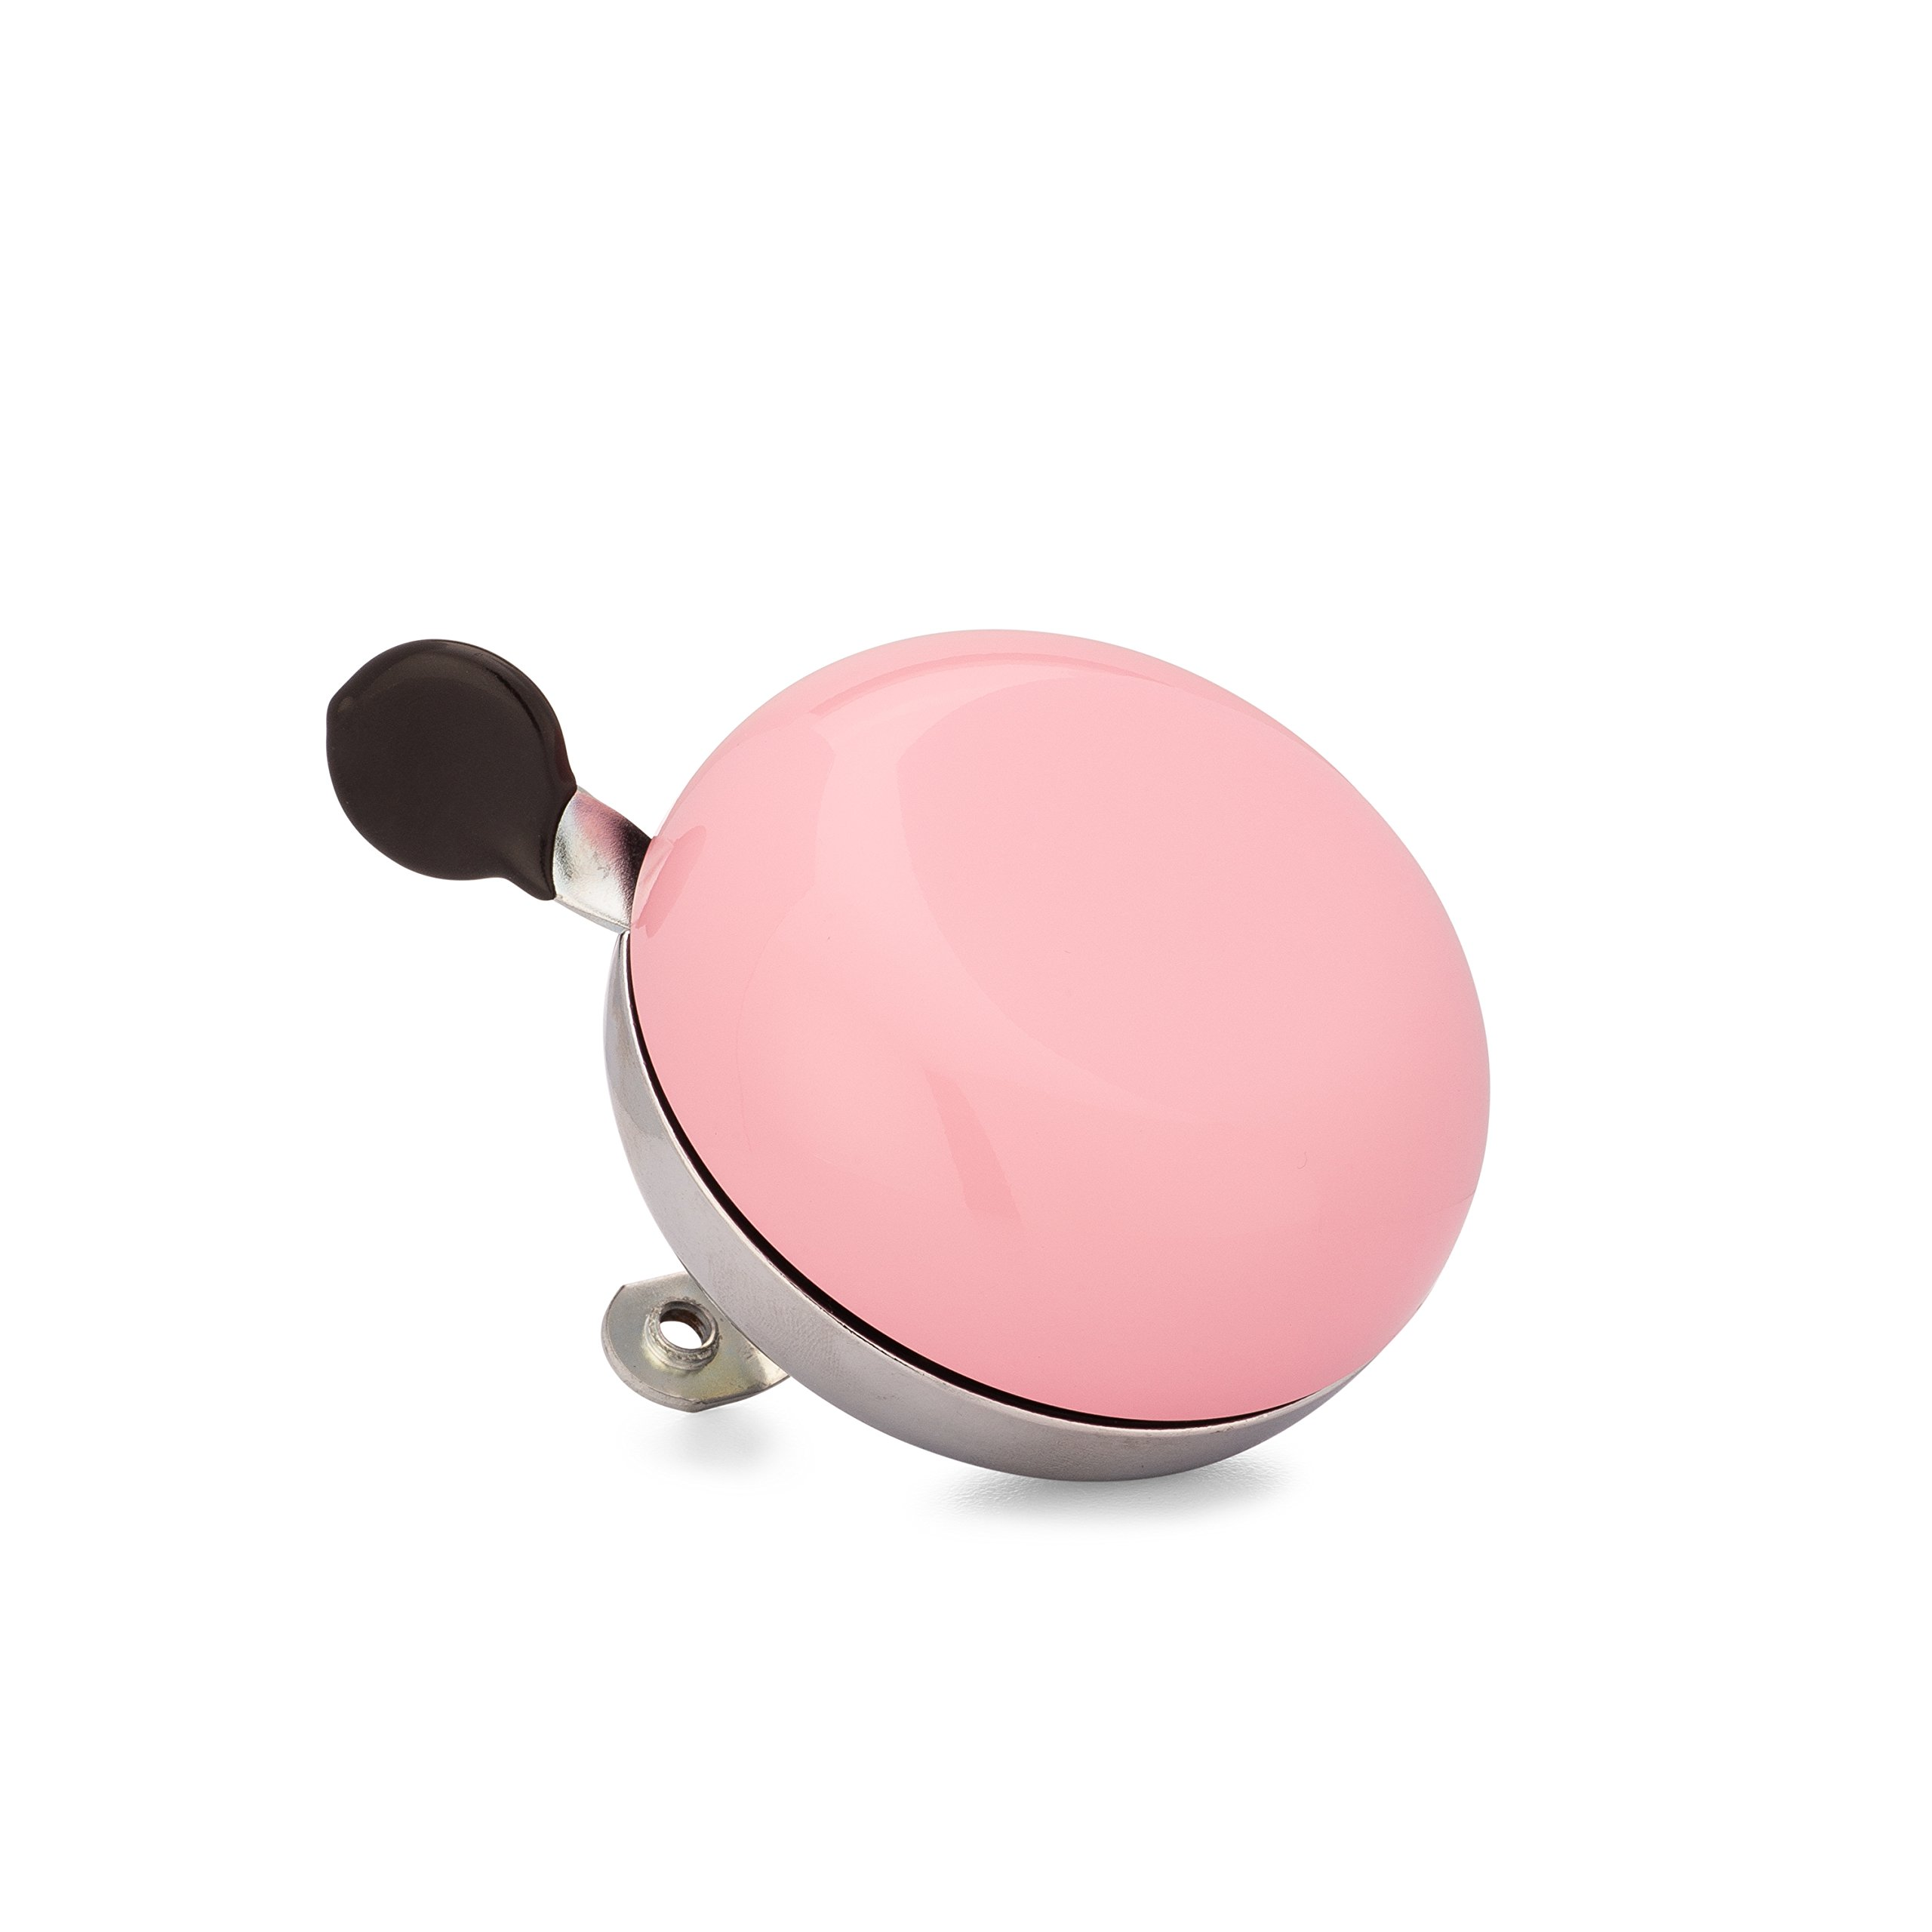 Kickstand Cycleworks Classic Beach Cruiser Ding Dong Bicycle Bell Multiple Color Options